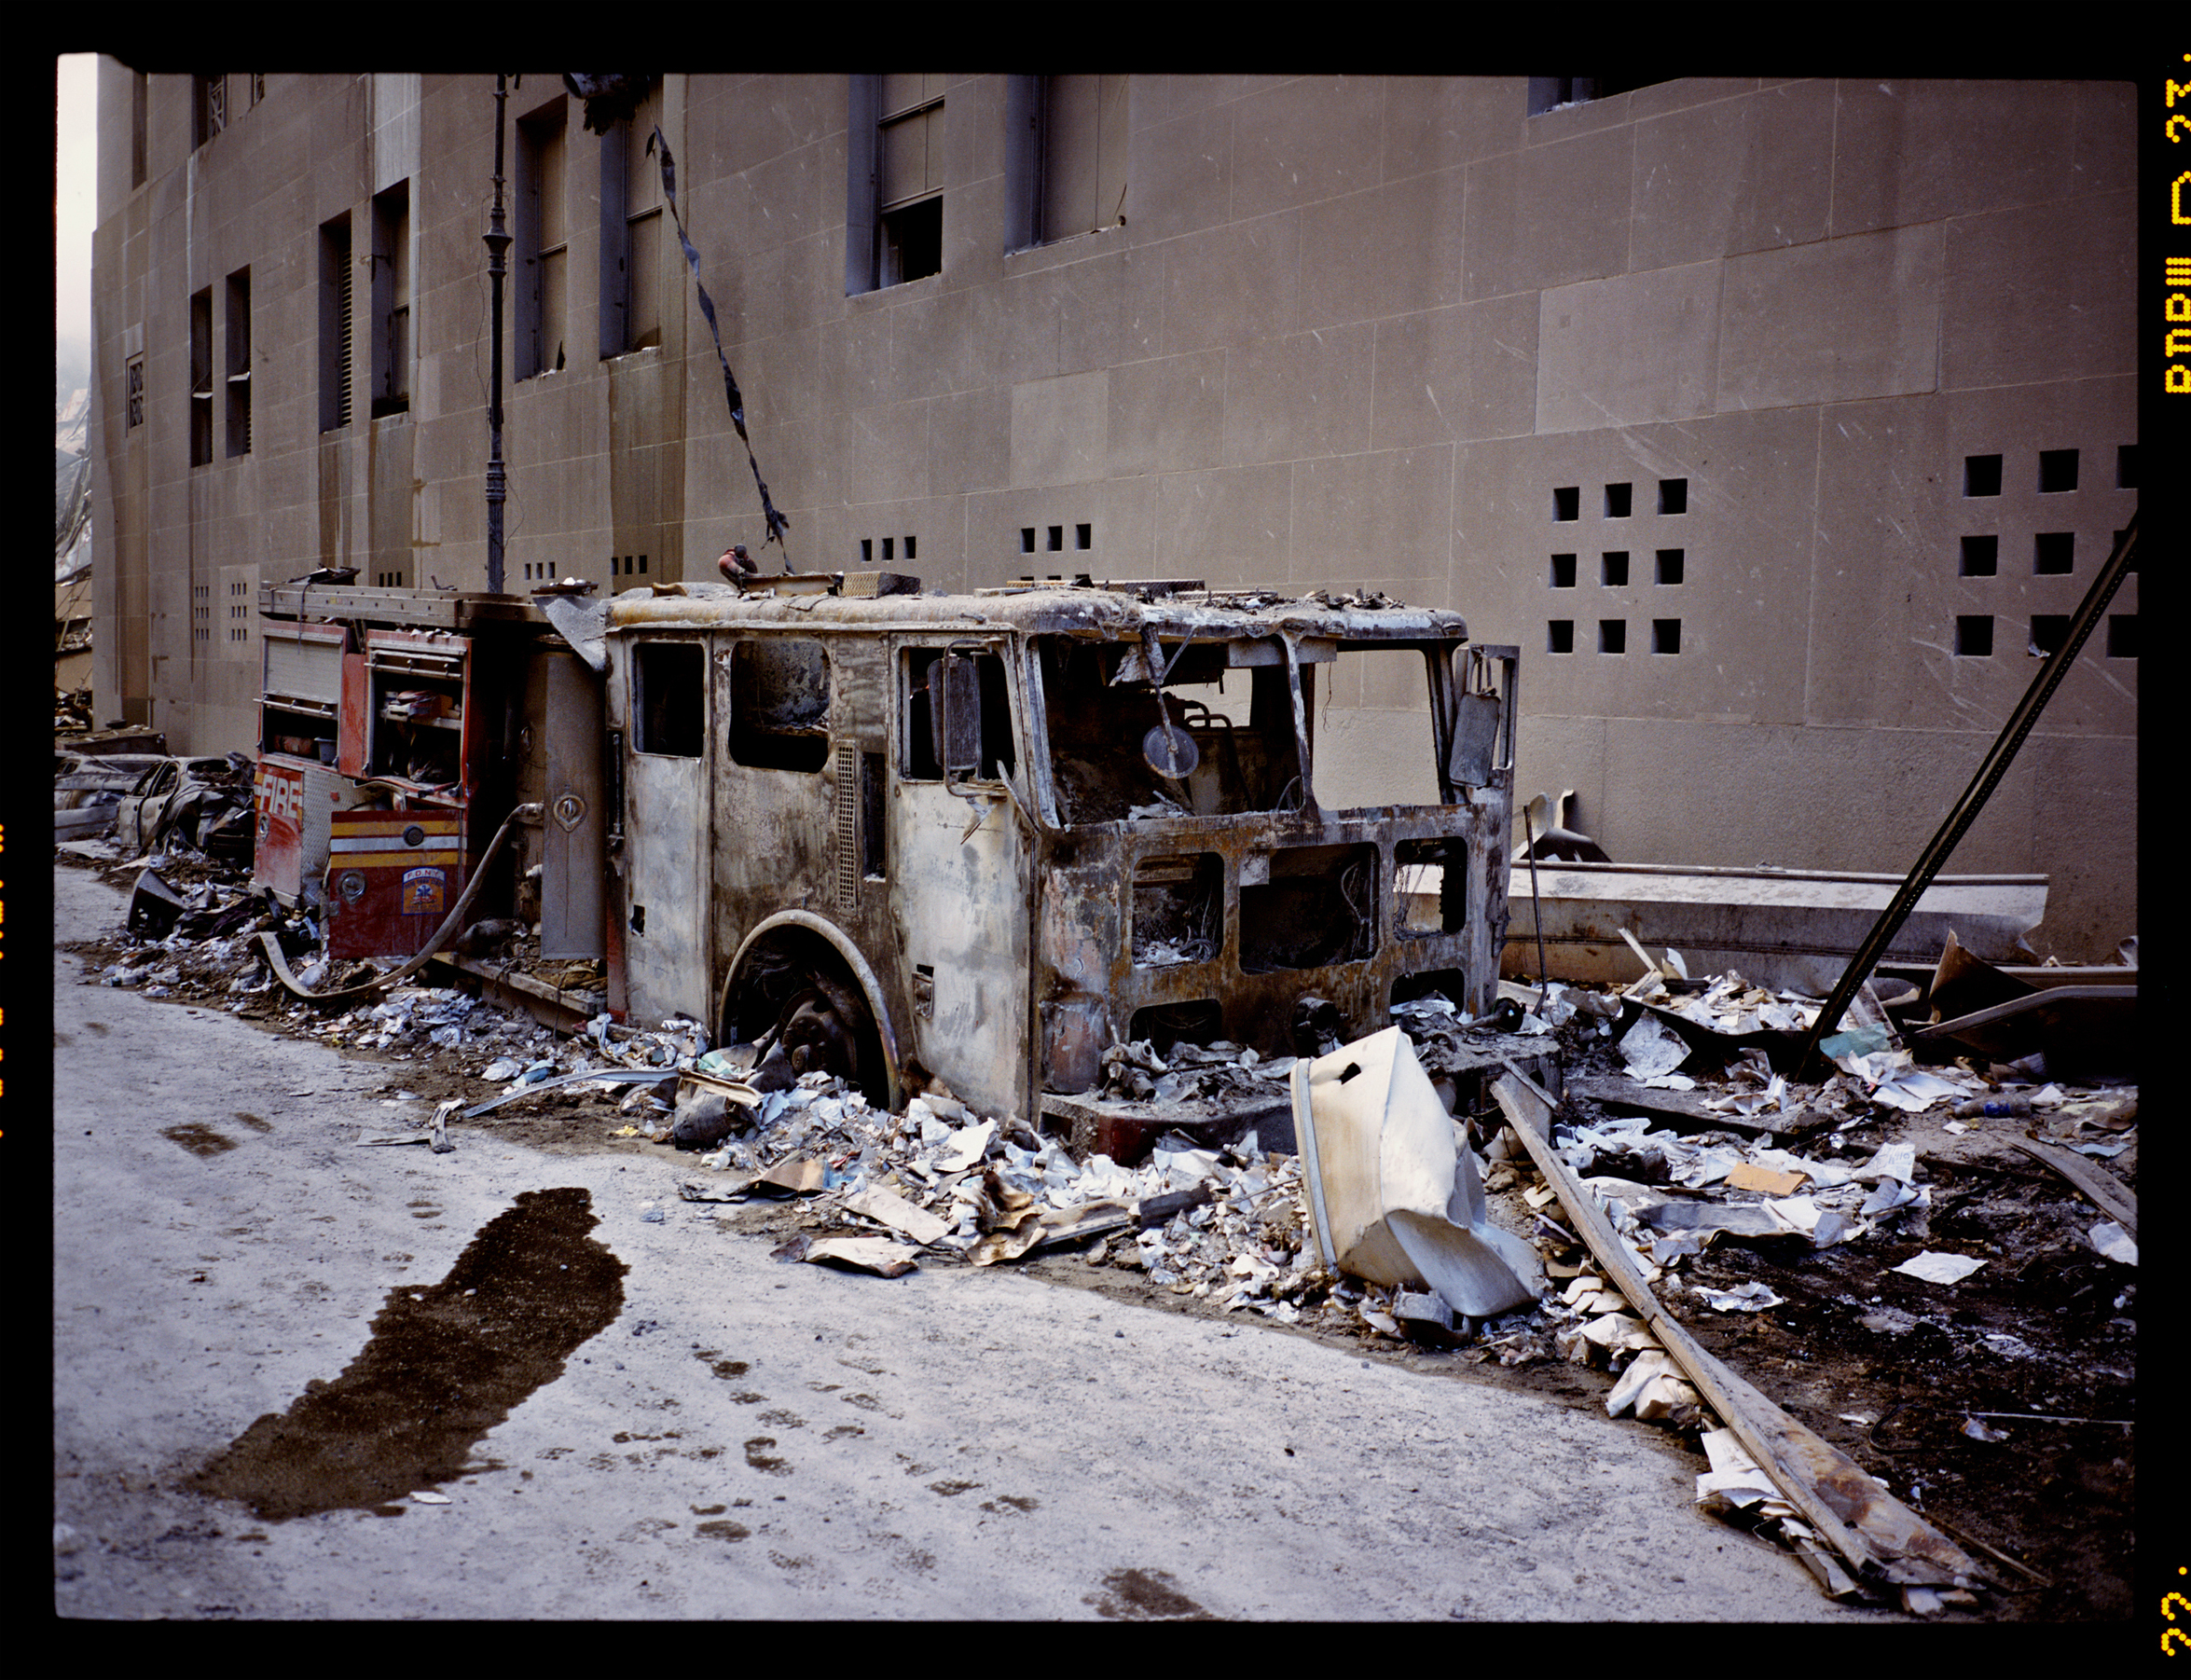 A destroyed fired truck on Vesey street, on Sept. 12, 2001.